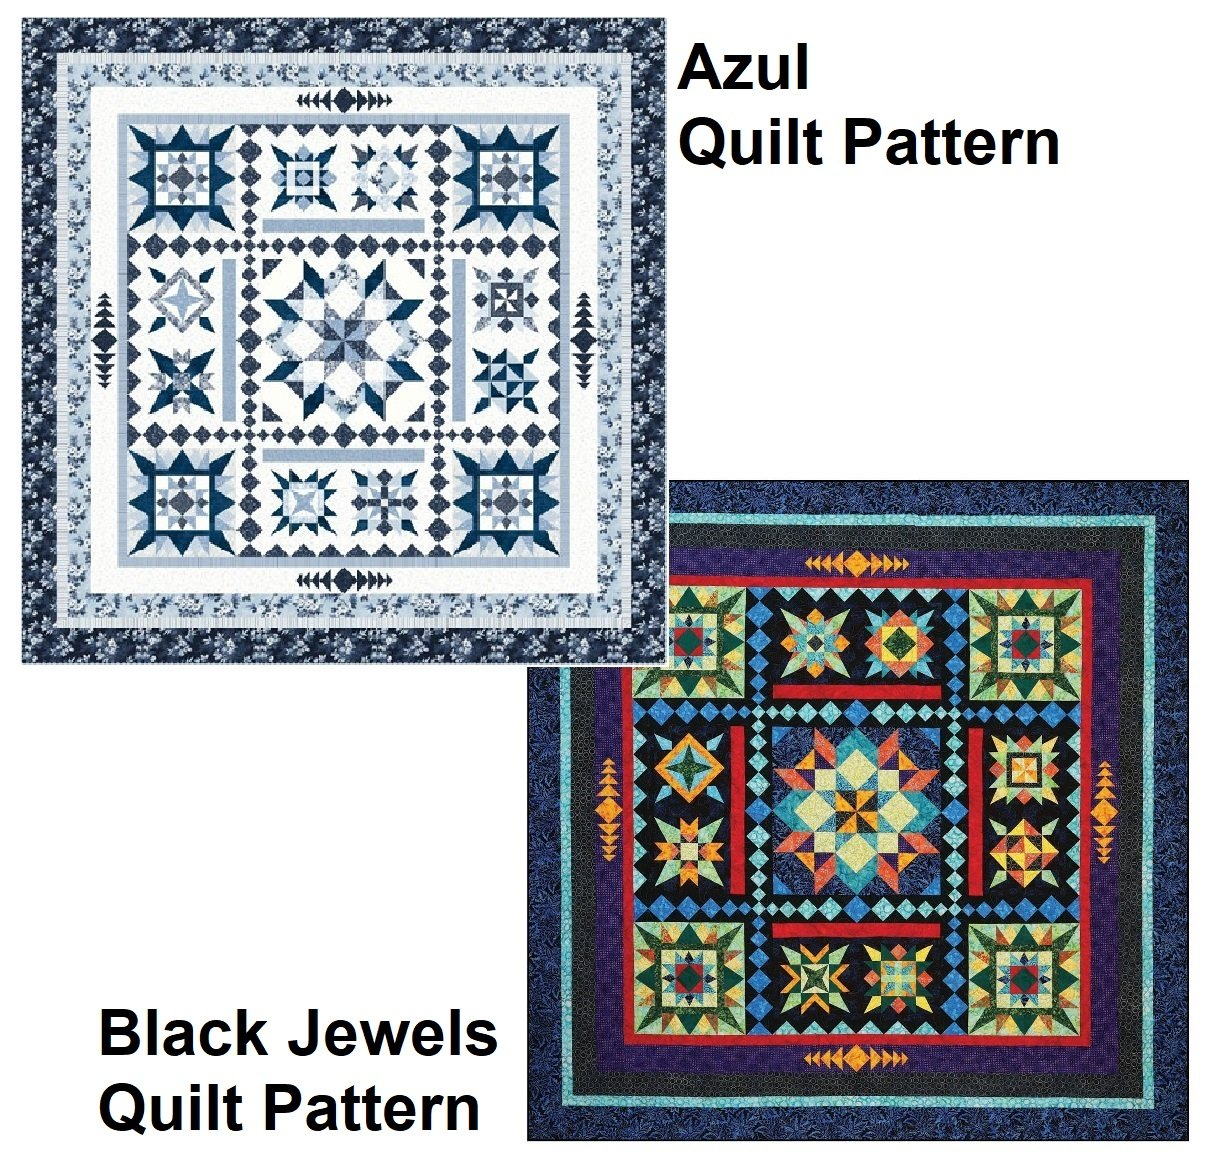 Azul and Black Jewels Quilt  Pattern